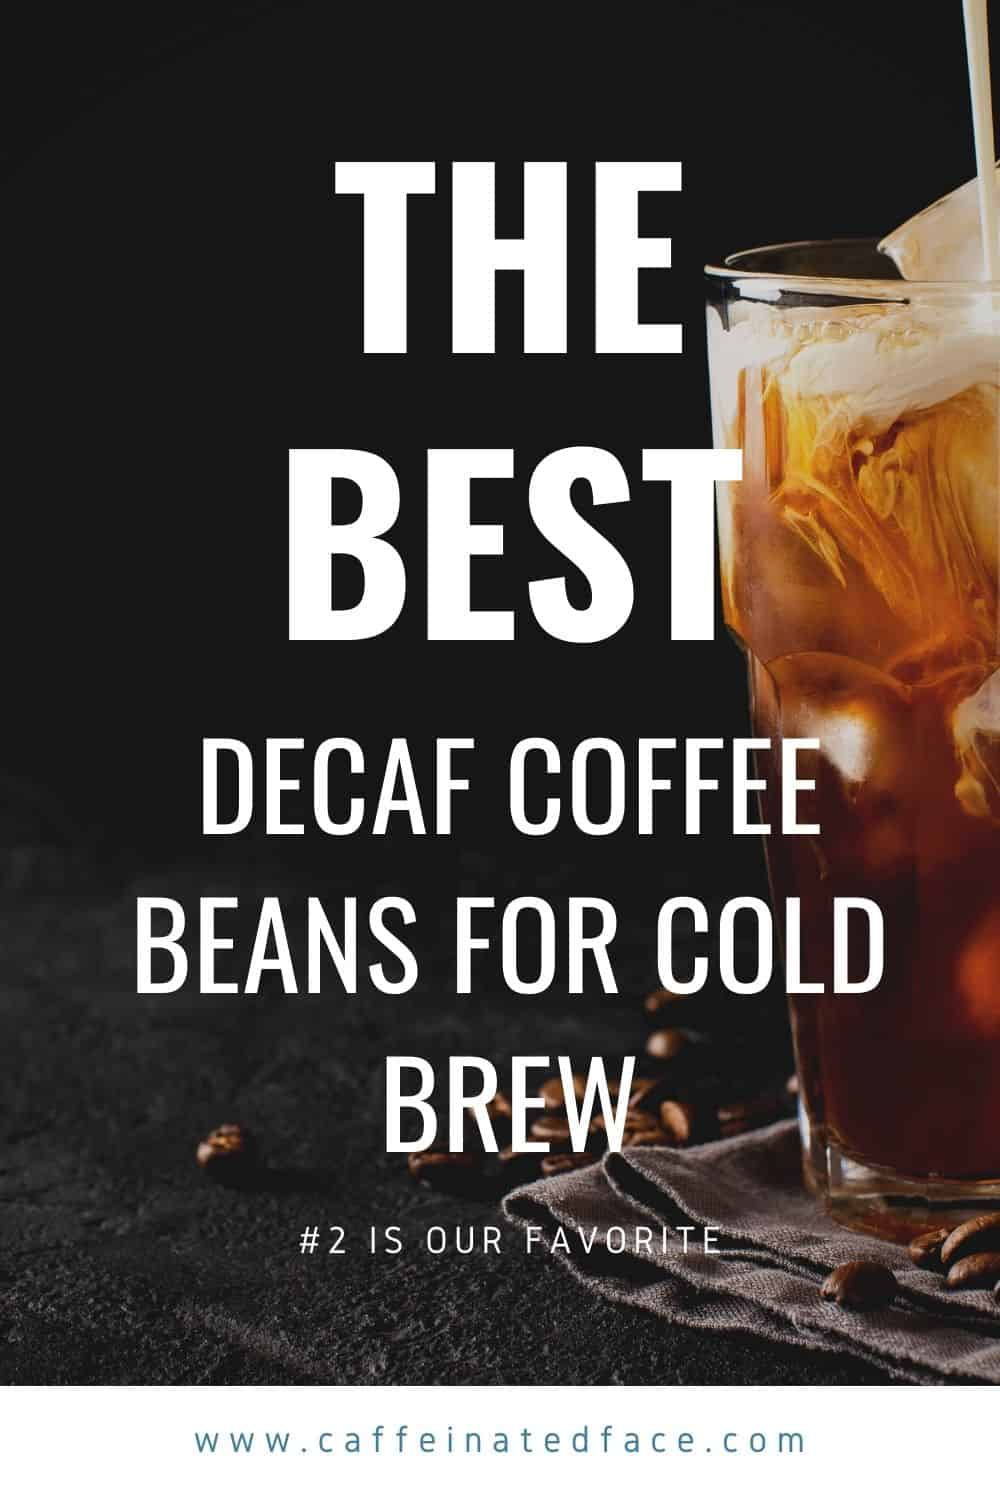 the best decaf coffee beans for cold brew